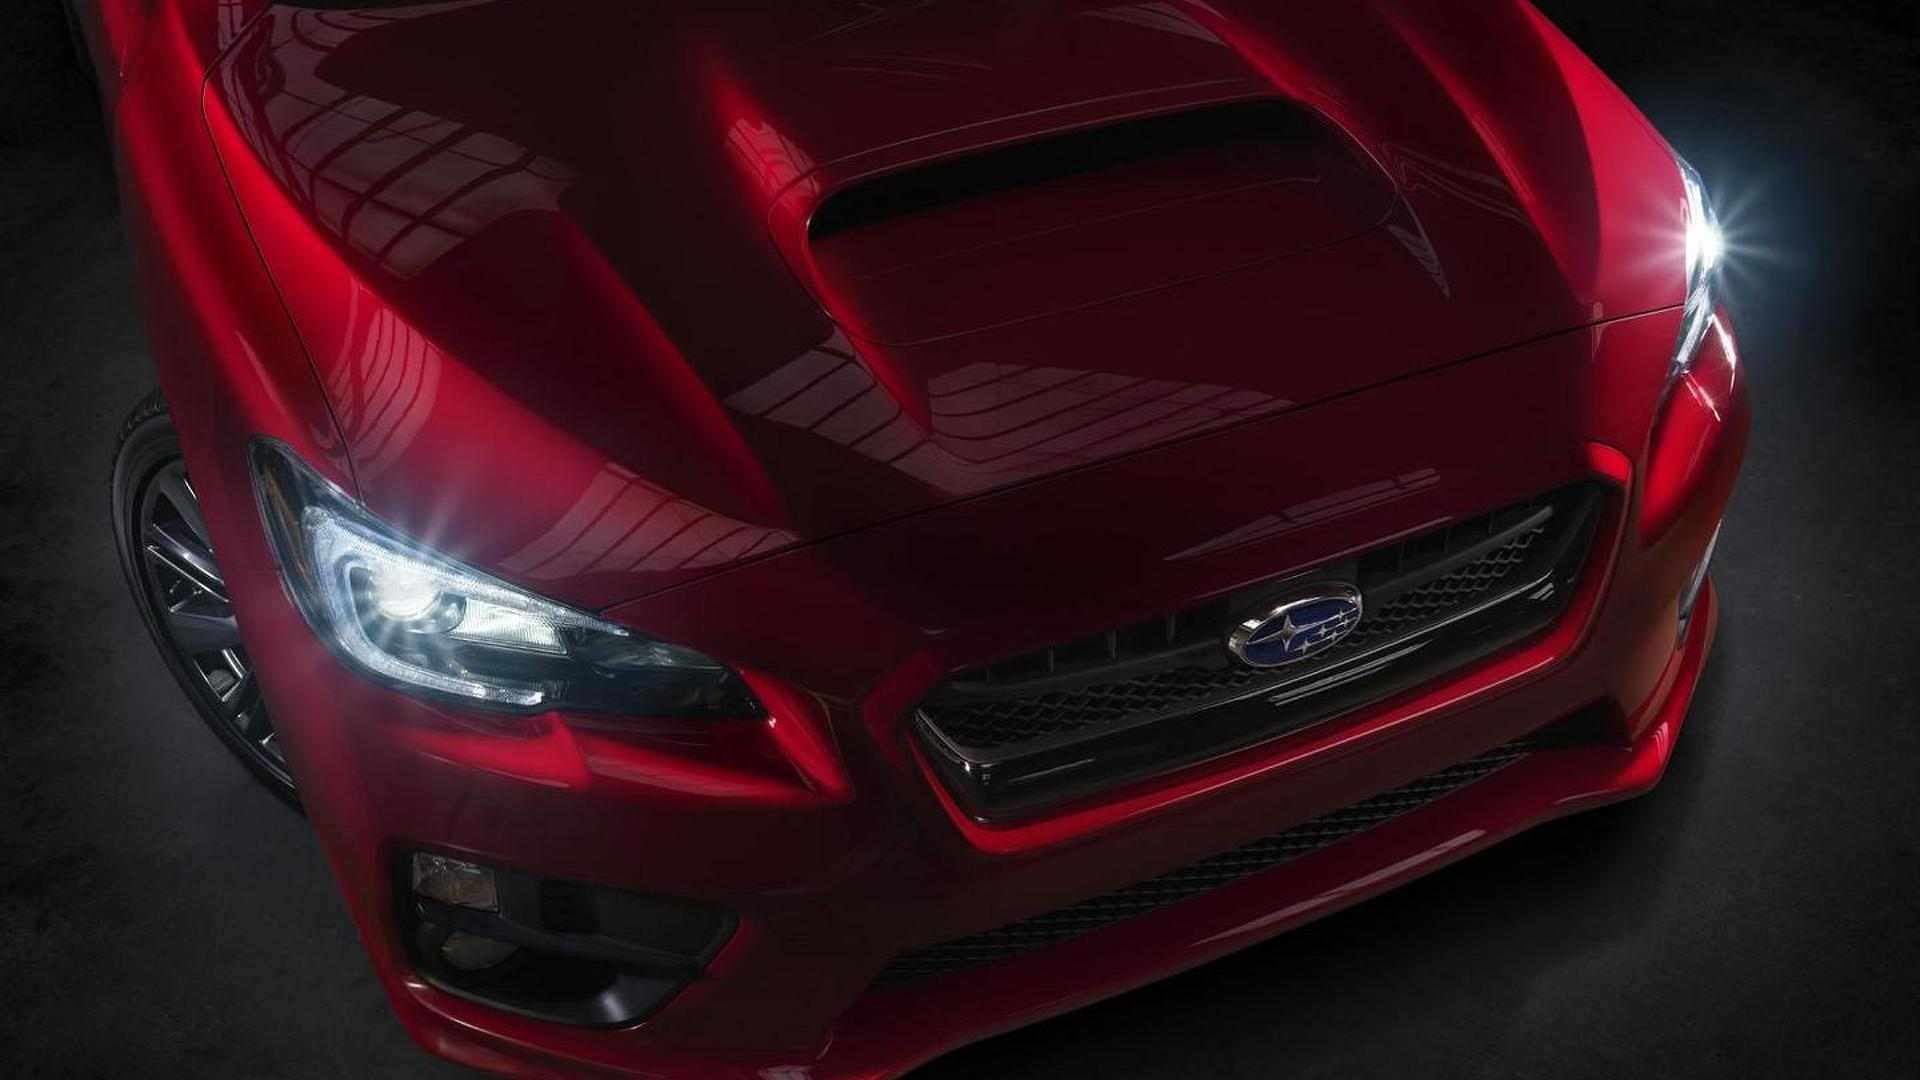 2015 Subaru WRX teased, debuts in Los Angeles